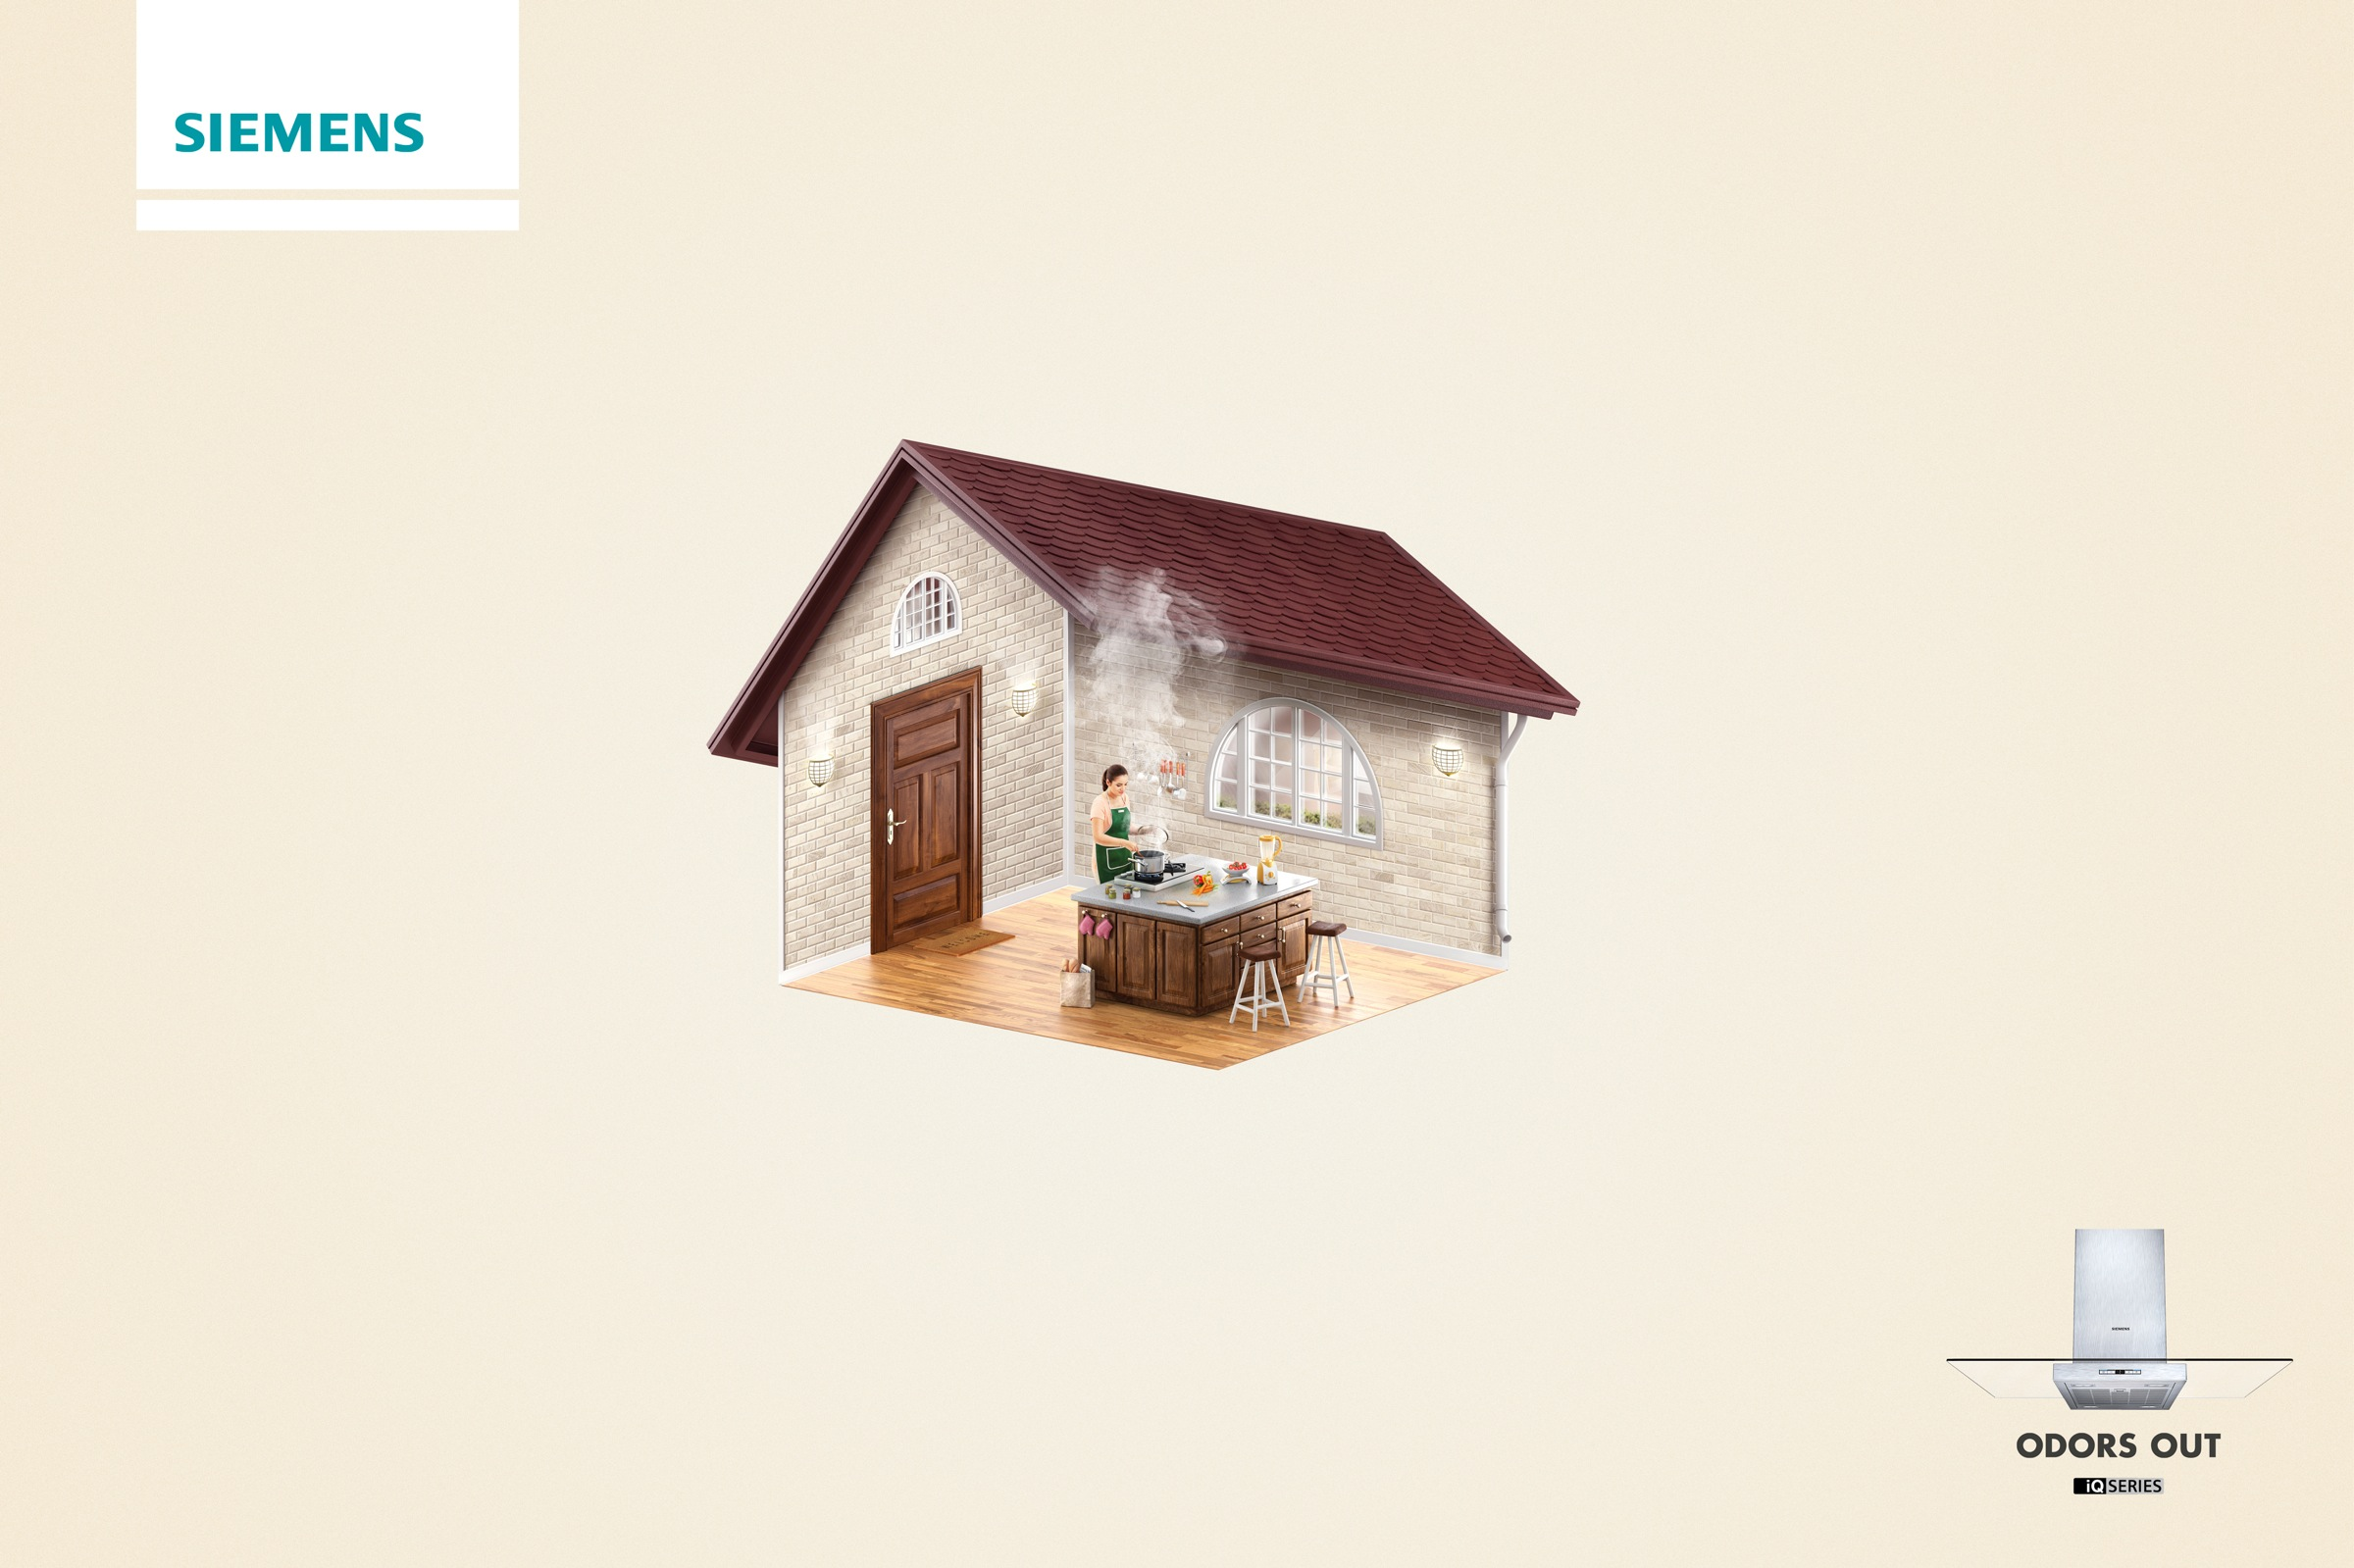 Siemens Print Ad - Odors Out - house